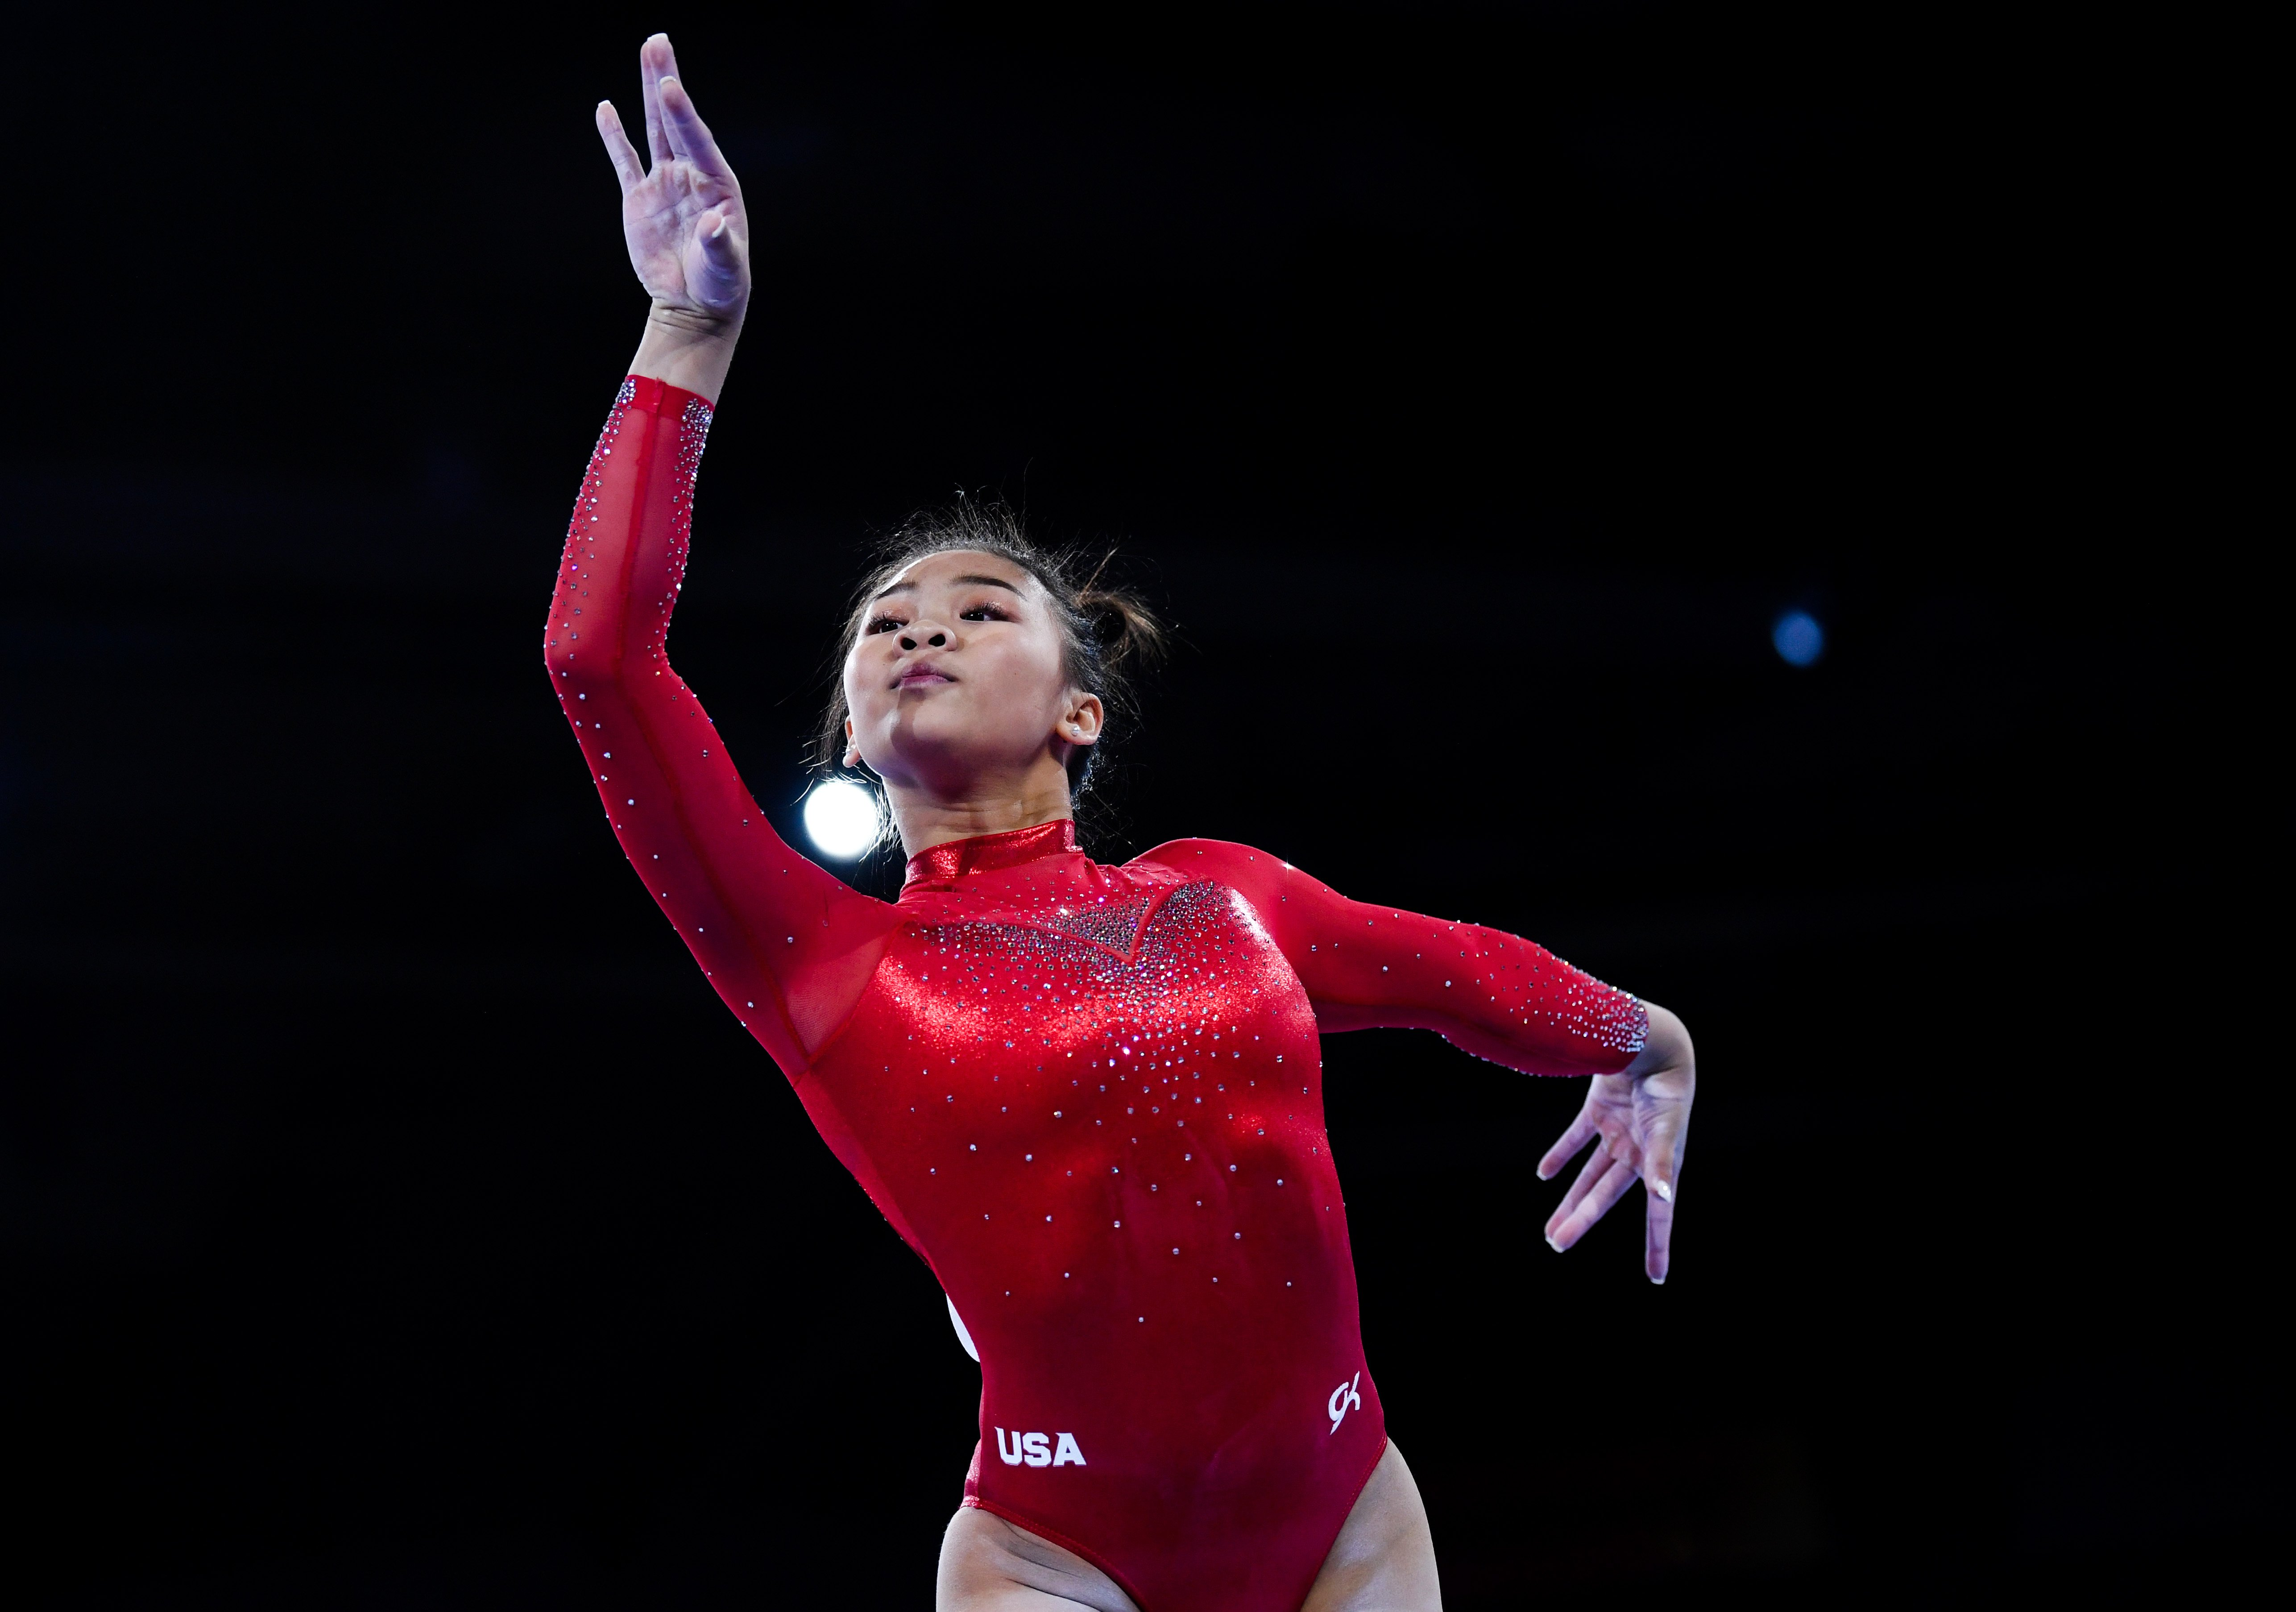 Artistic gymnast Sunisa Lee performs during the Women's All-Around Final on Day 7 of FIG Artistic Gymnastics World Championships on October 10, 2019 in Stuttgart, Germany | Photo: Getty Images